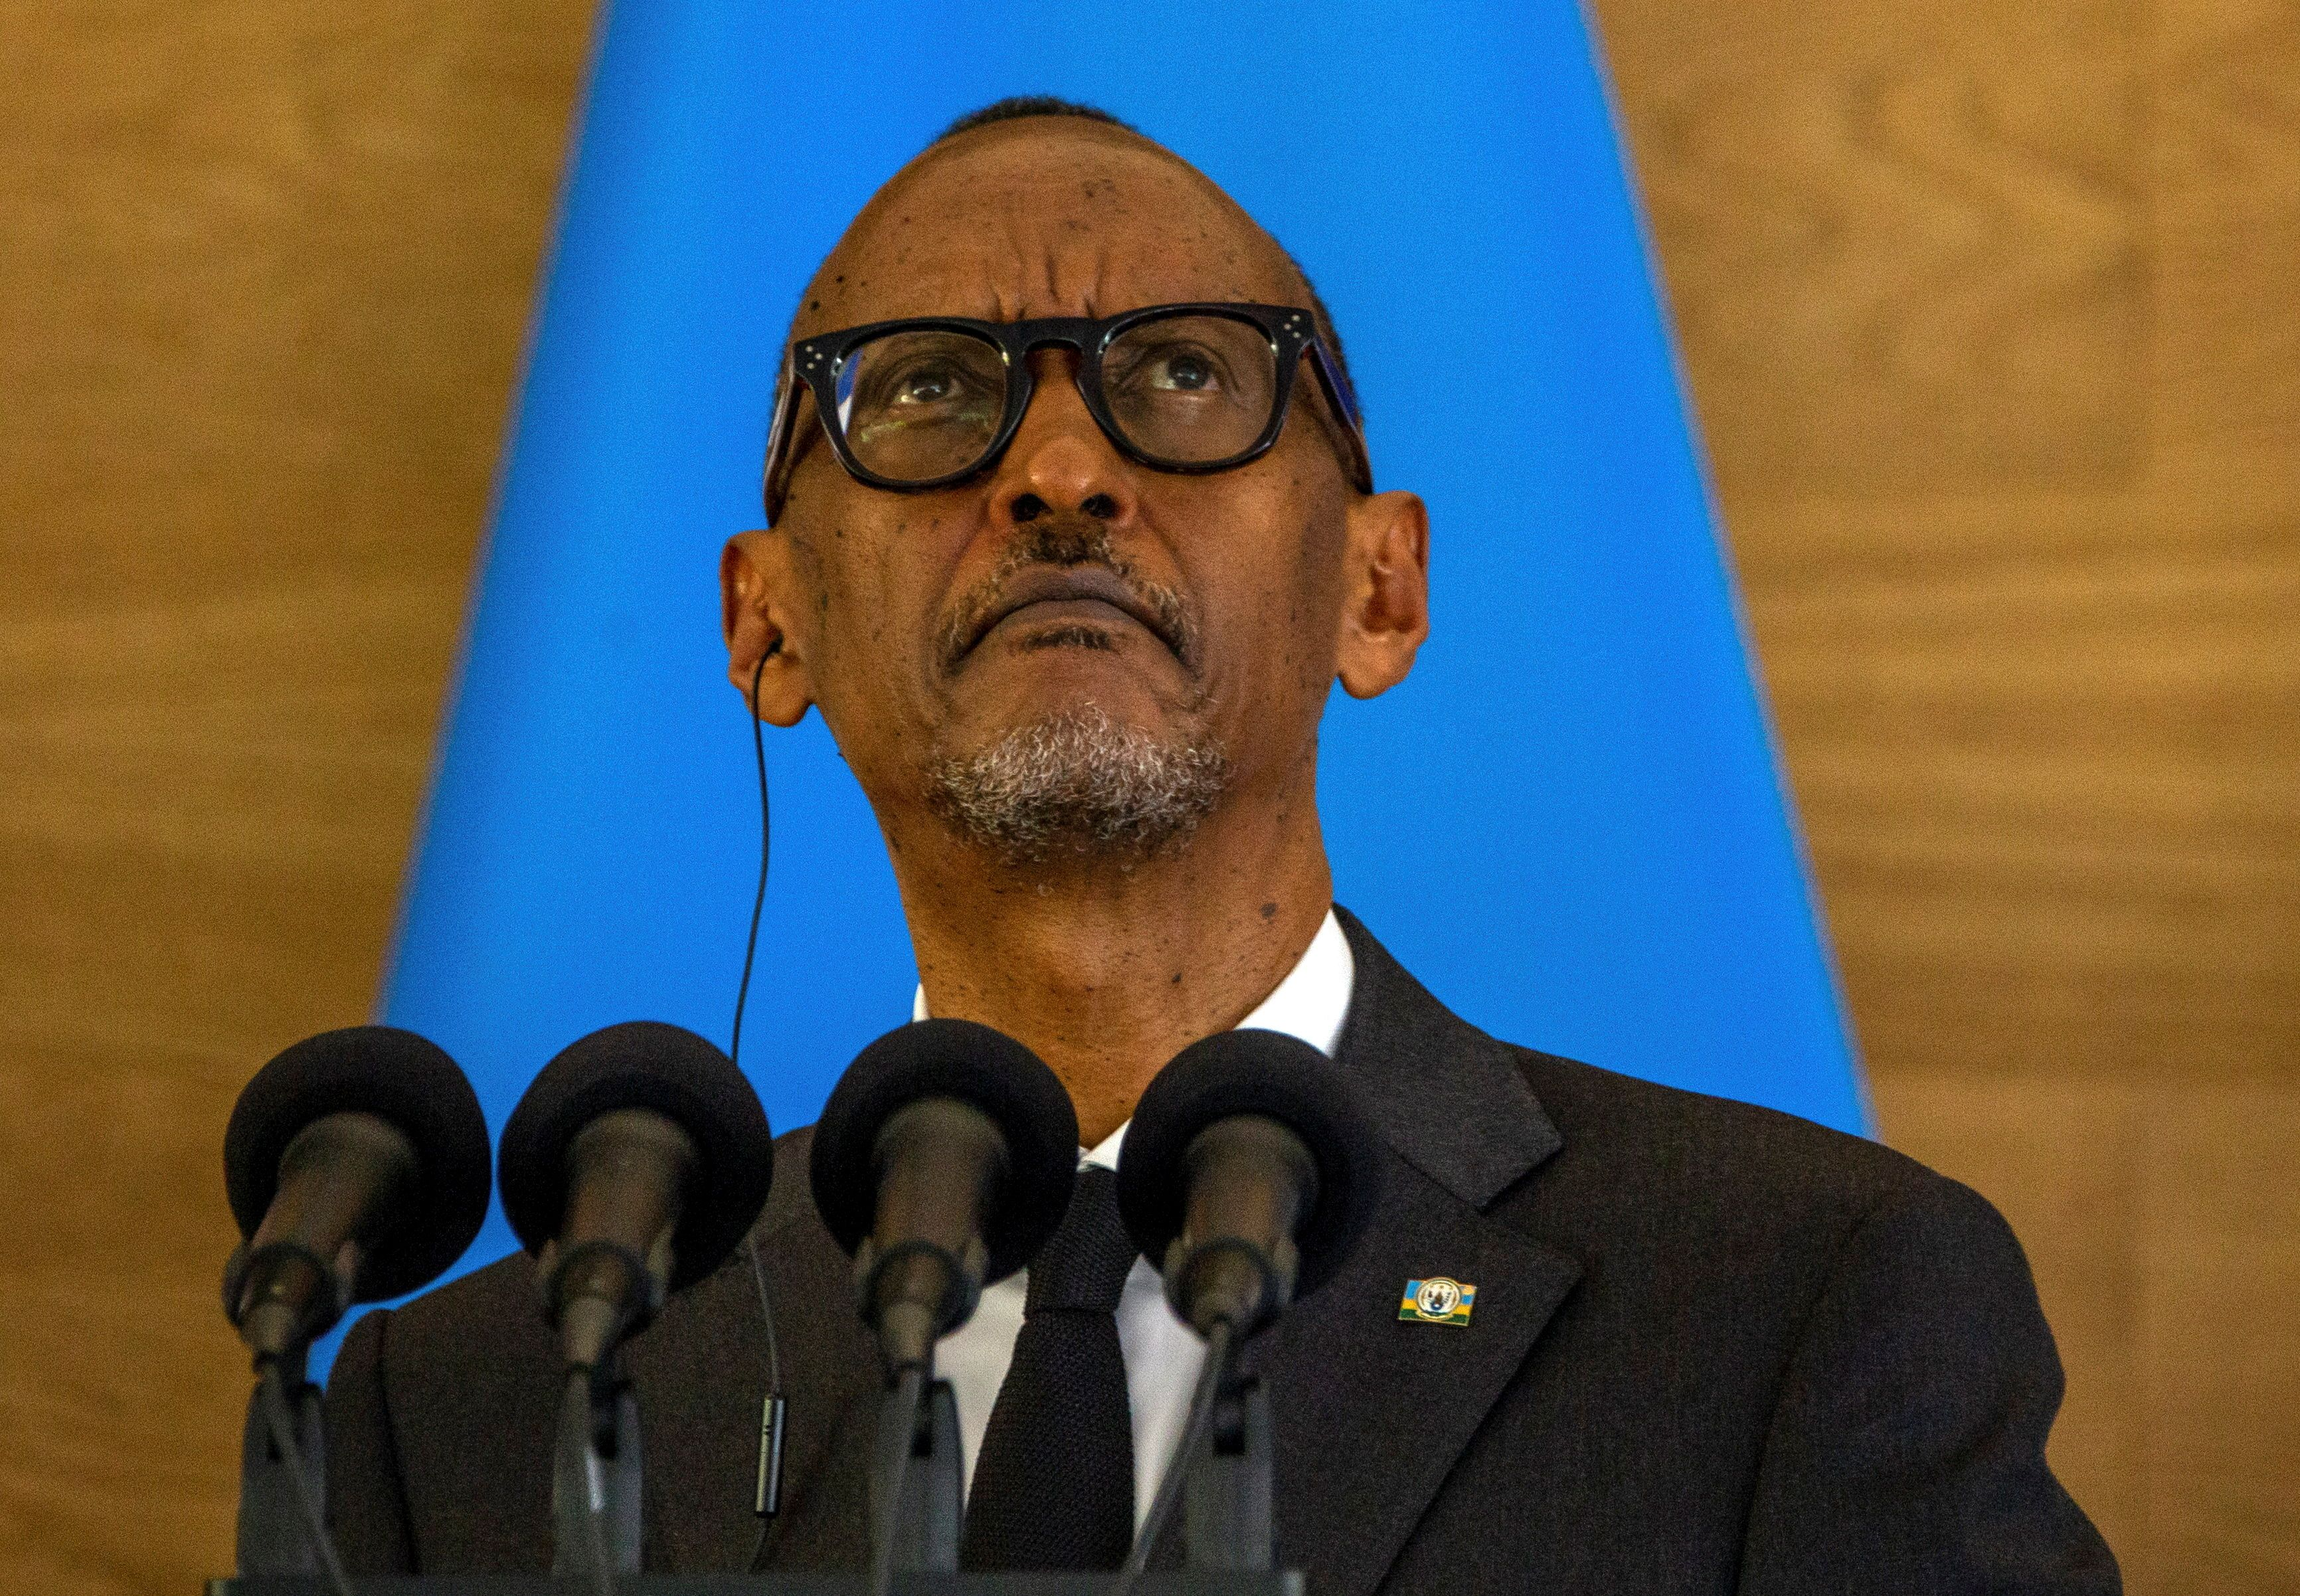 Rwandan President Paul Kagame looks on as he attends a joint news conference with French President Emmanuel Macron at the Presidential Palace in Kigali, Rwanda May 27, 2021. REUTERS/Jean Bizimana